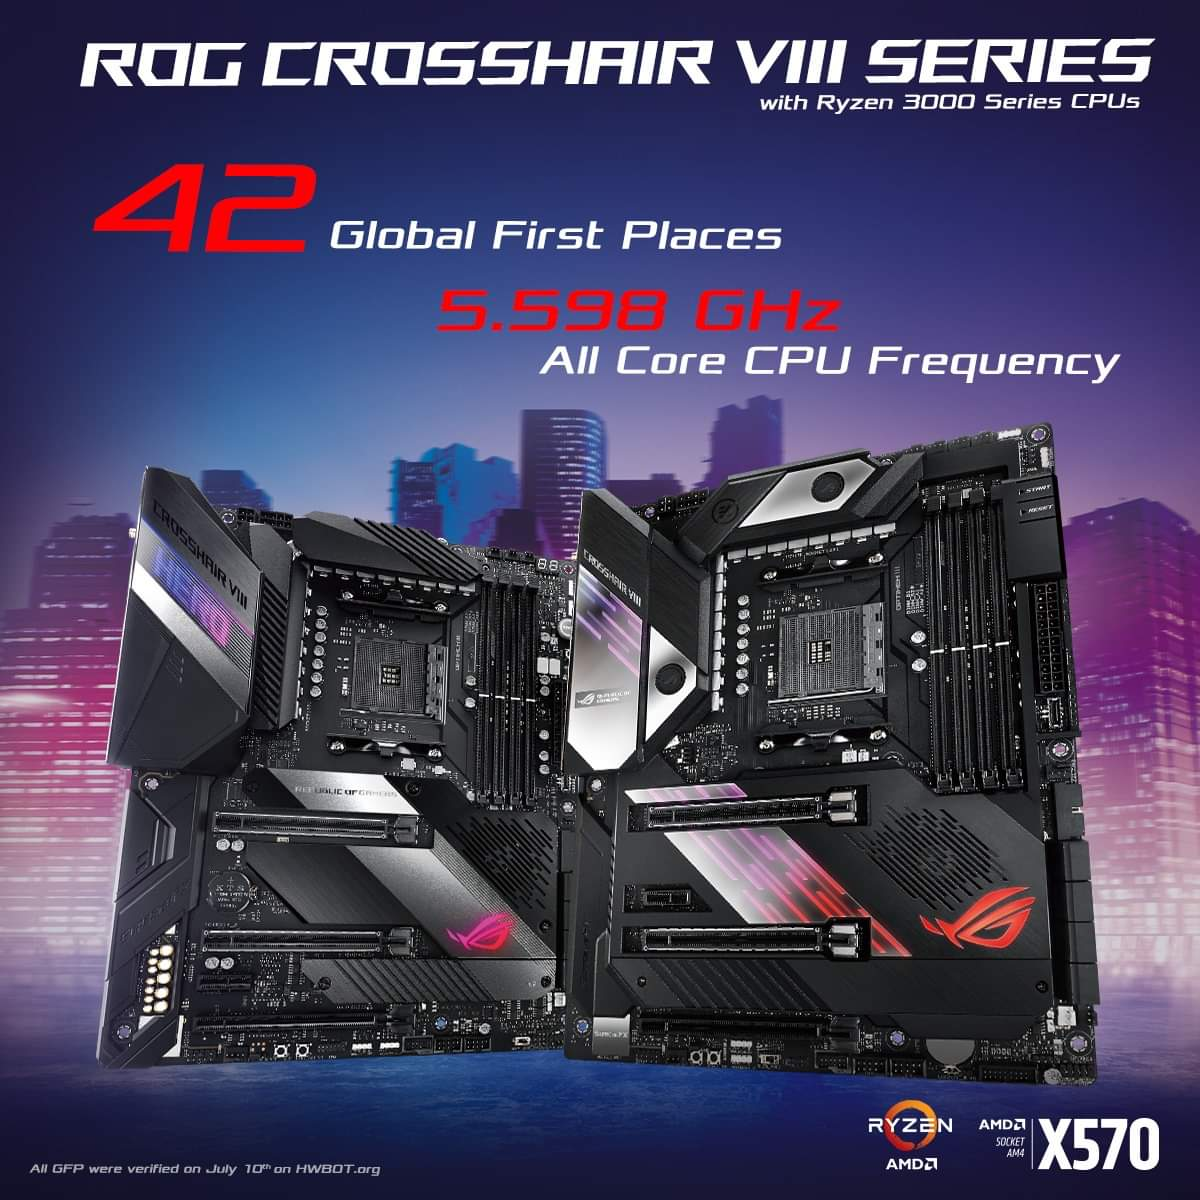 The ROG Crosshair VIII Series achieved 42 global first place